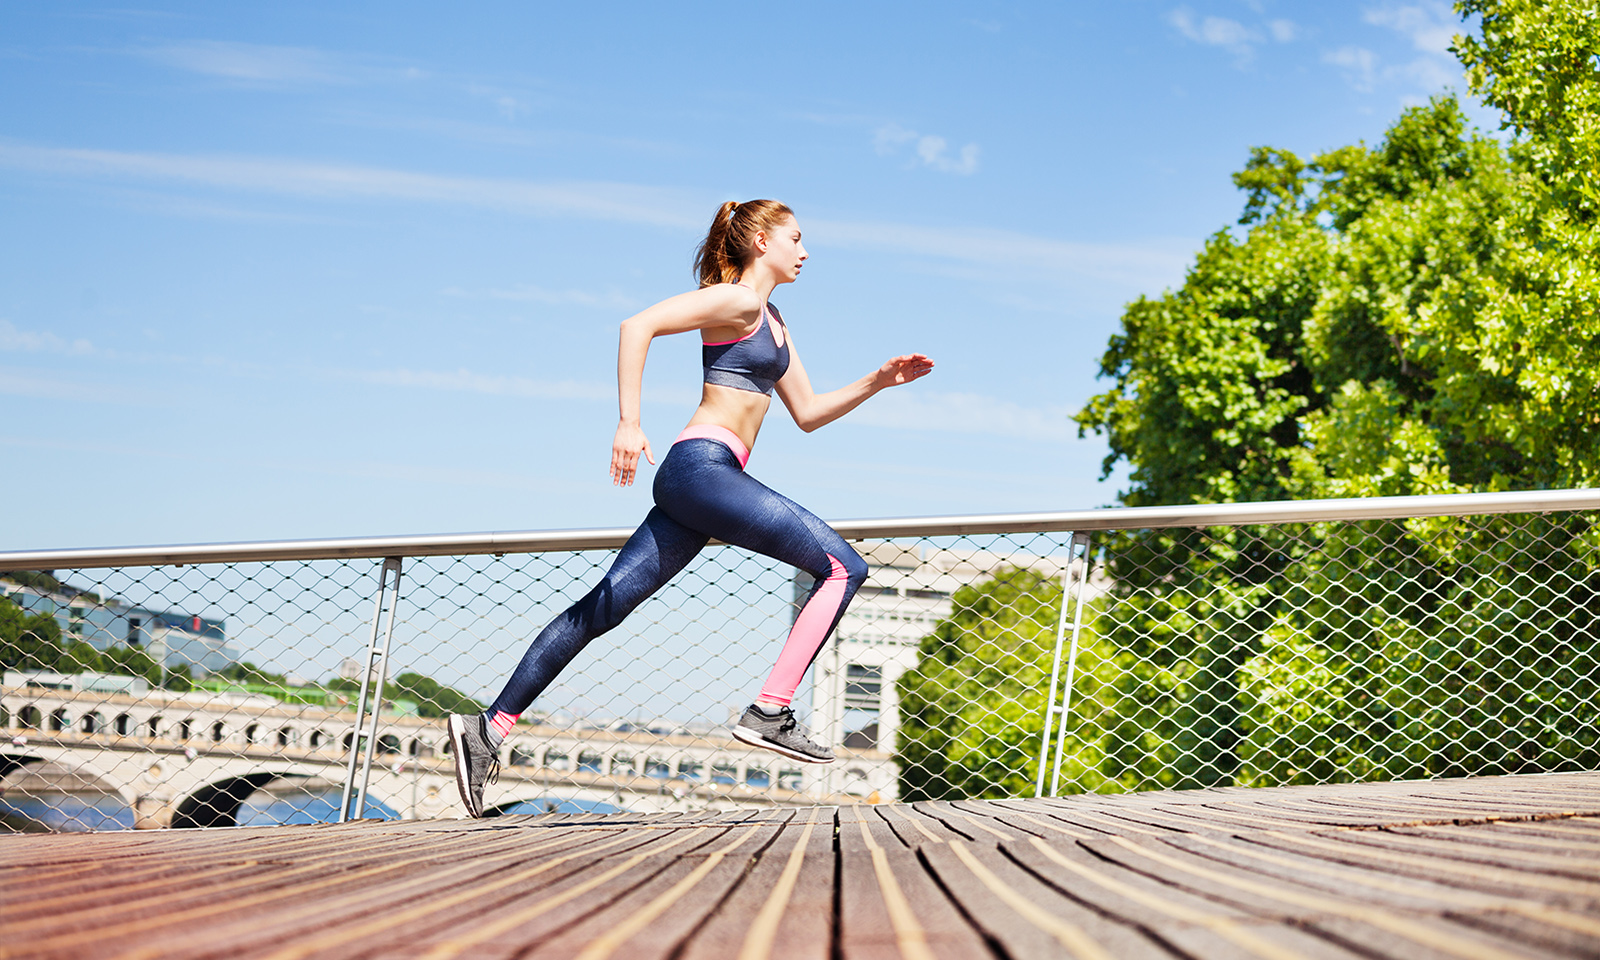 ways-to-get-on-track-for-a-wellness-routine-in-the-new-year-main-image-woman-running